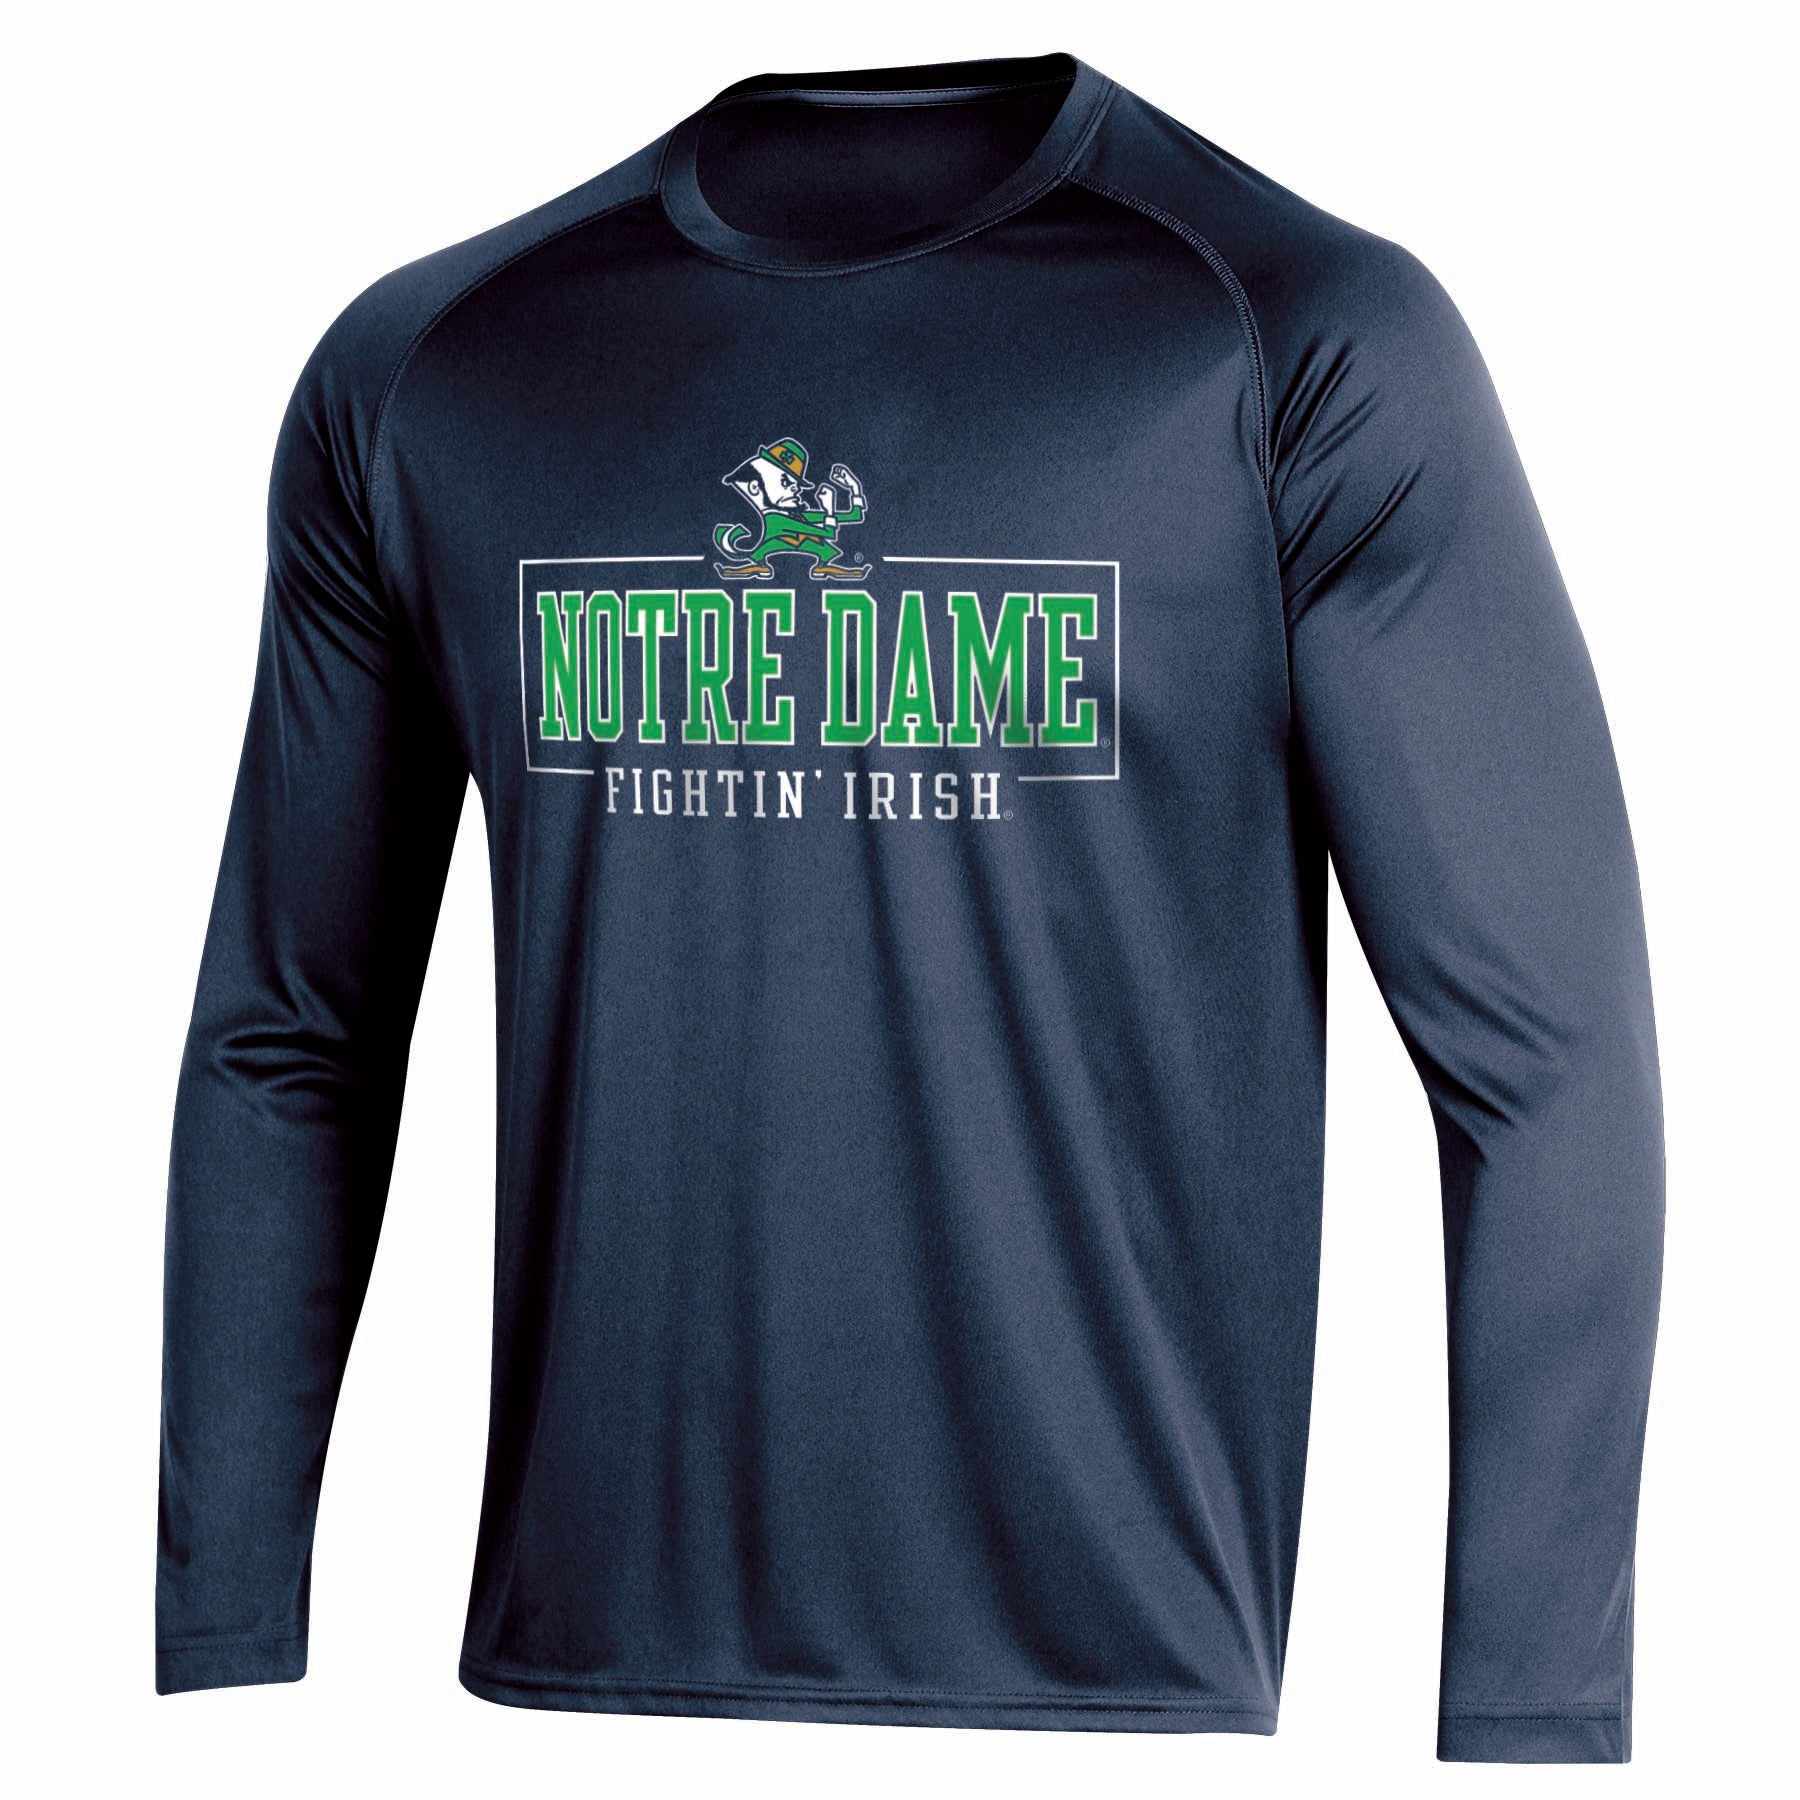 Notre Dame Fighting Irish Long Sleeve Shirt